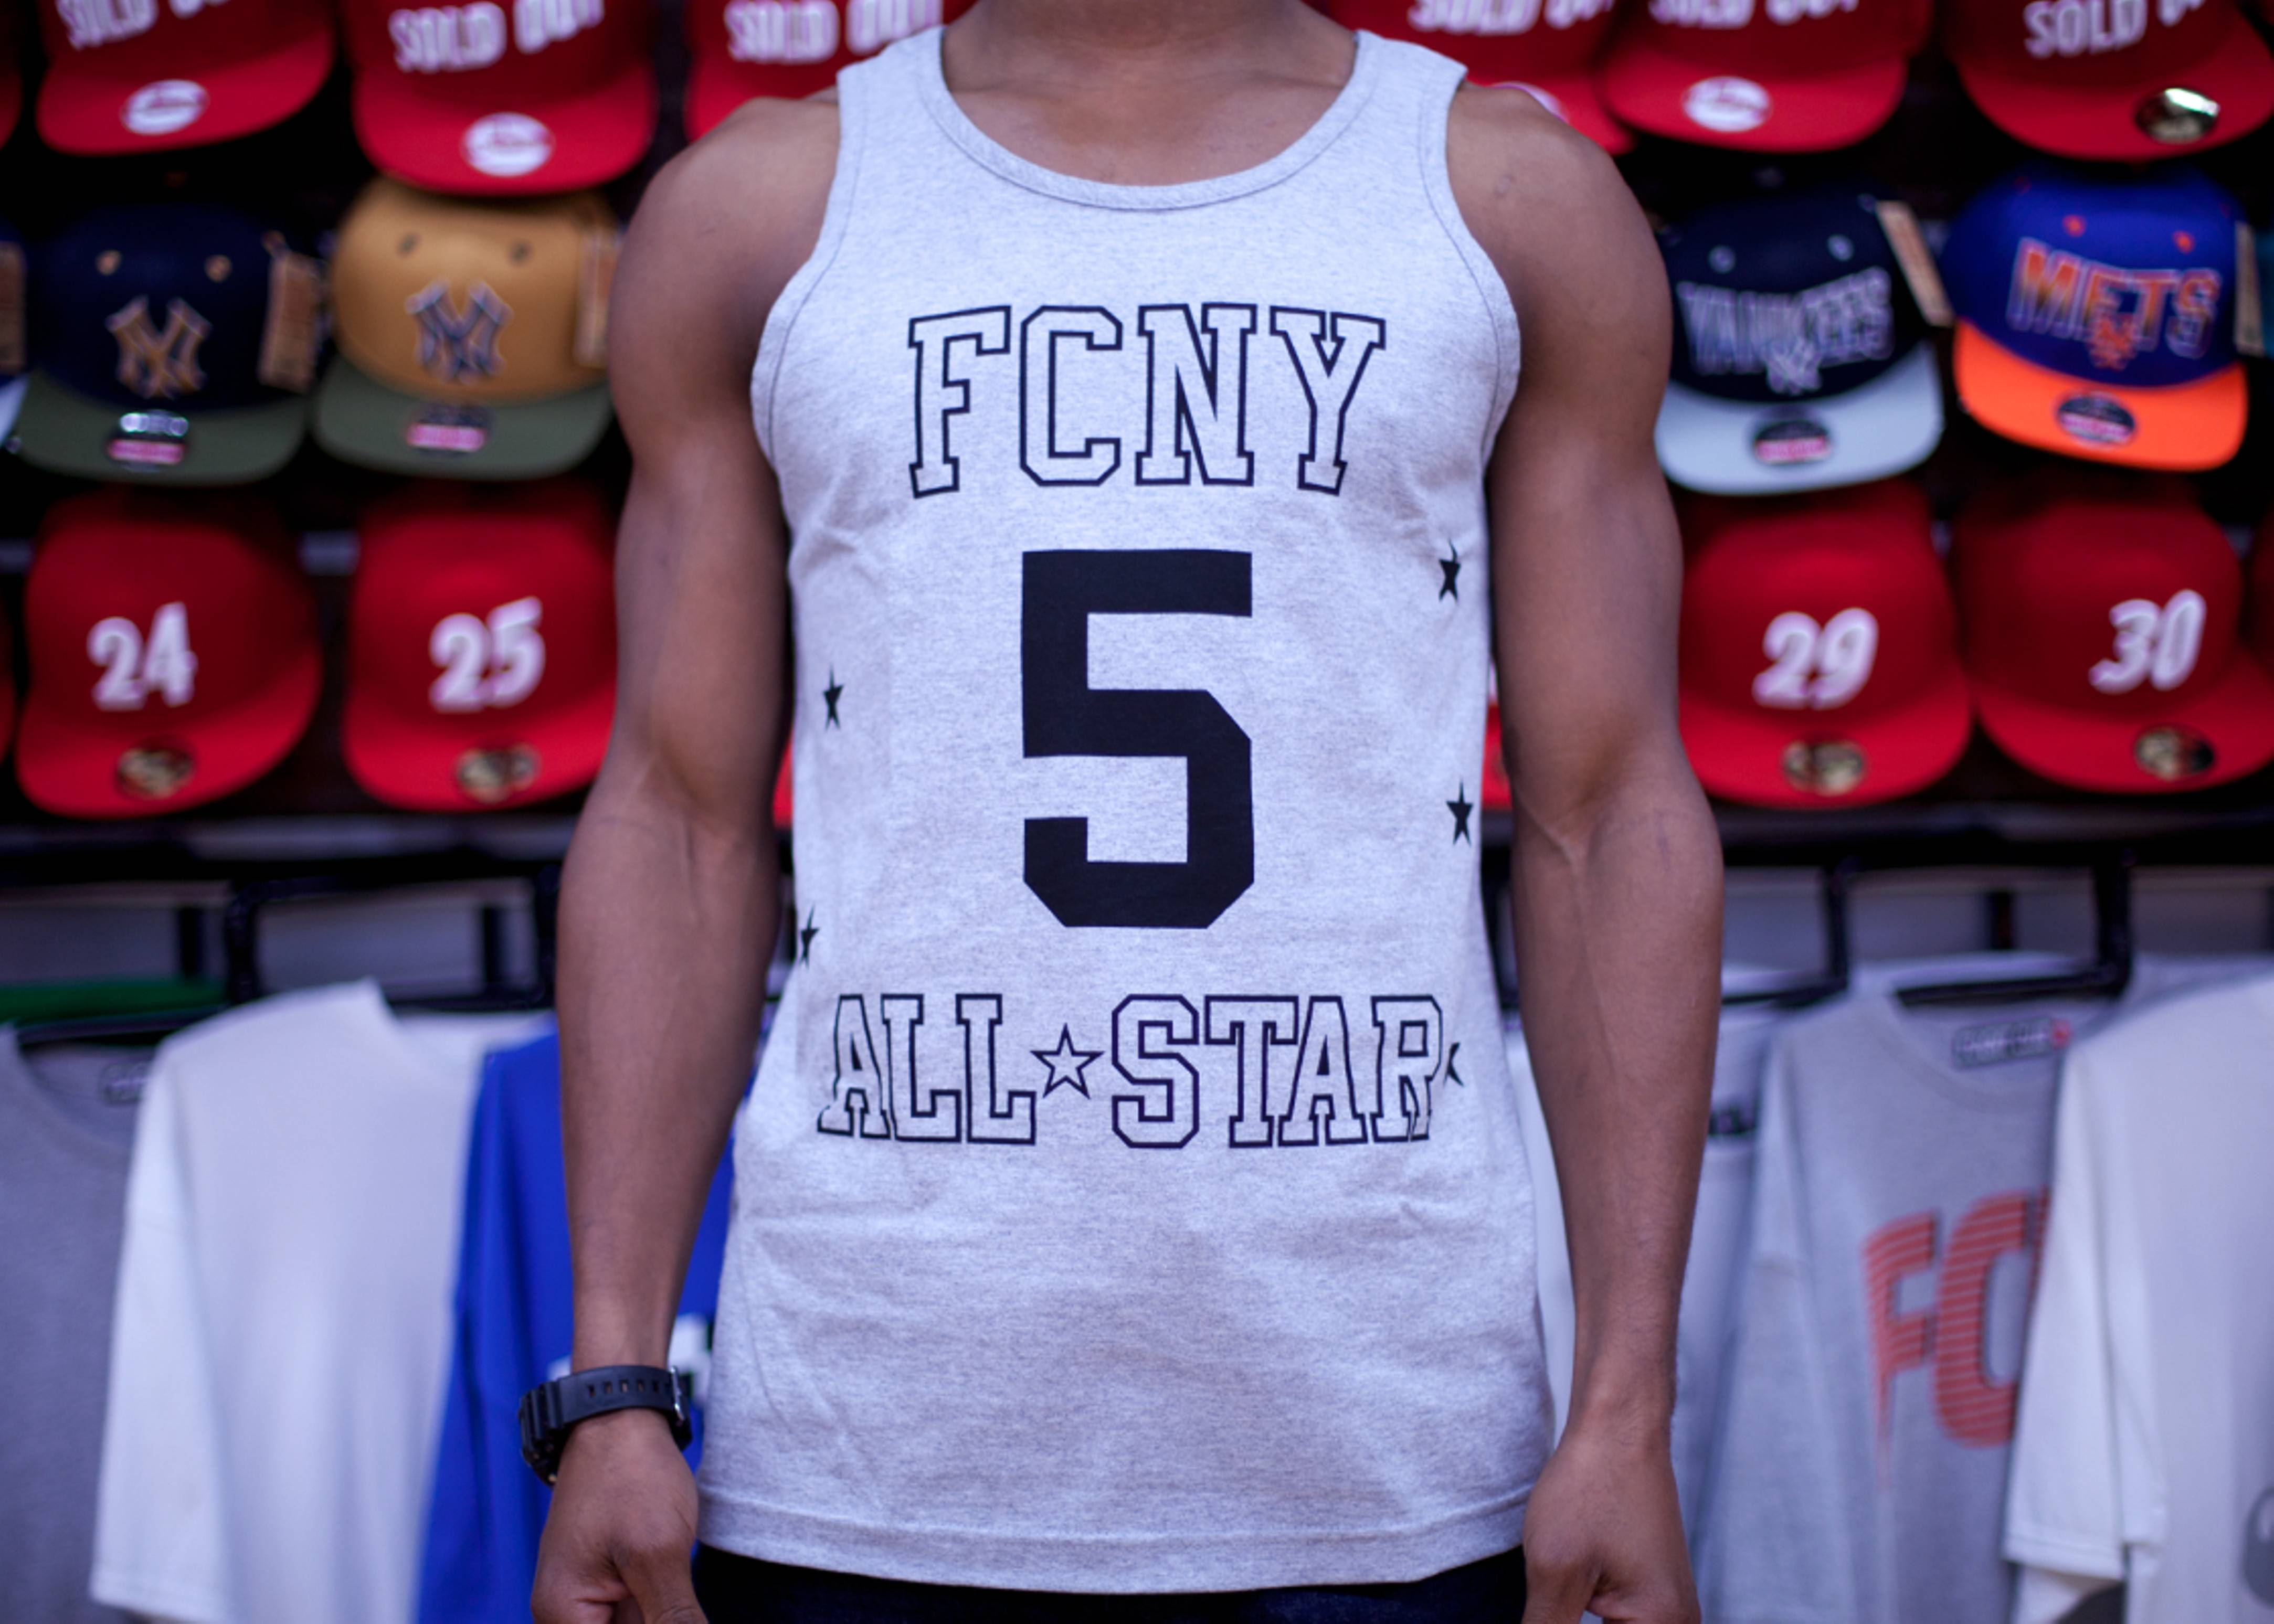 fcny all-star tank